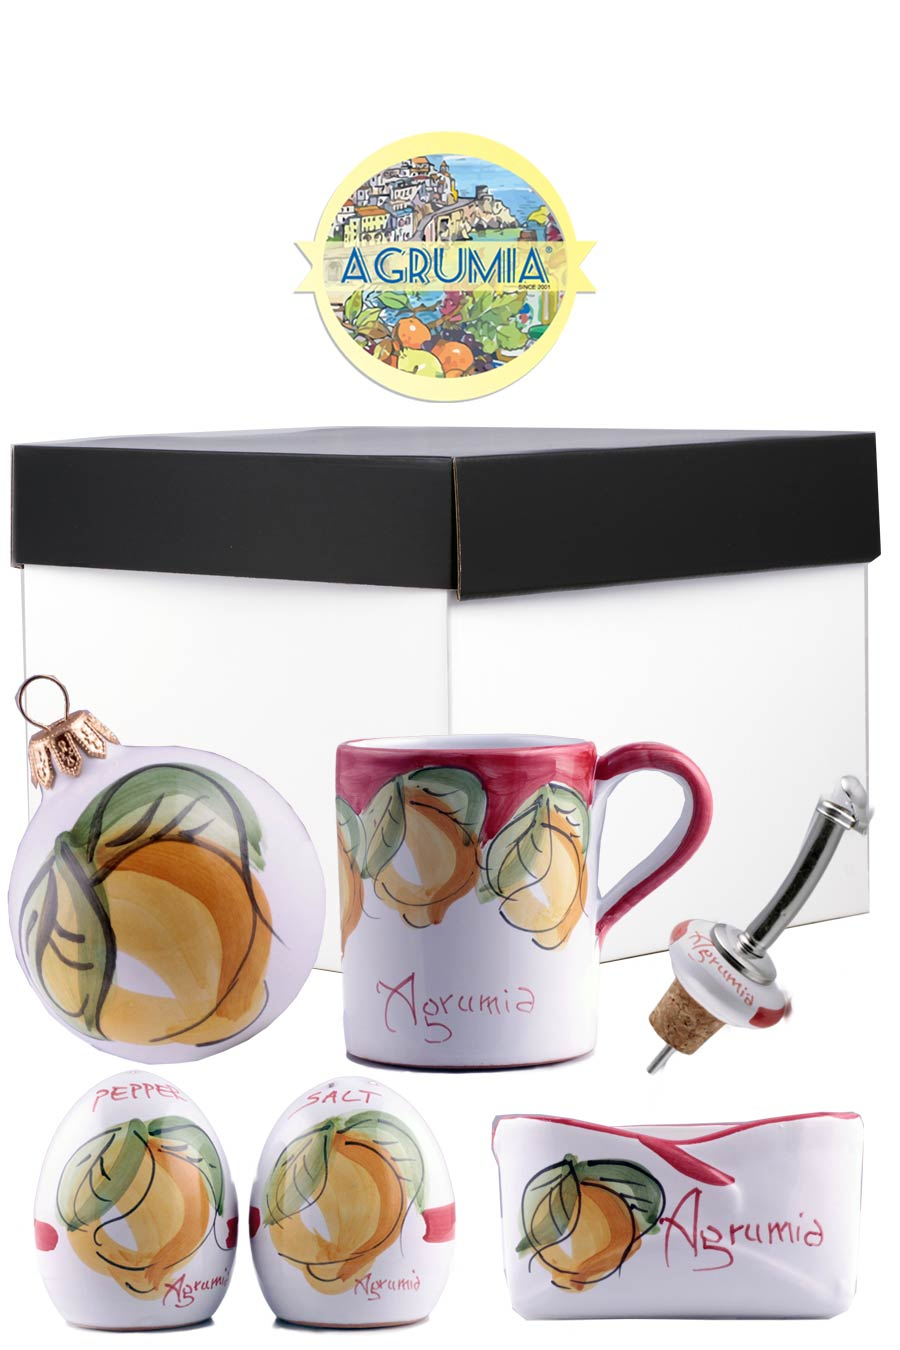 Agrumia Art and Craft Hamper - Agrumia